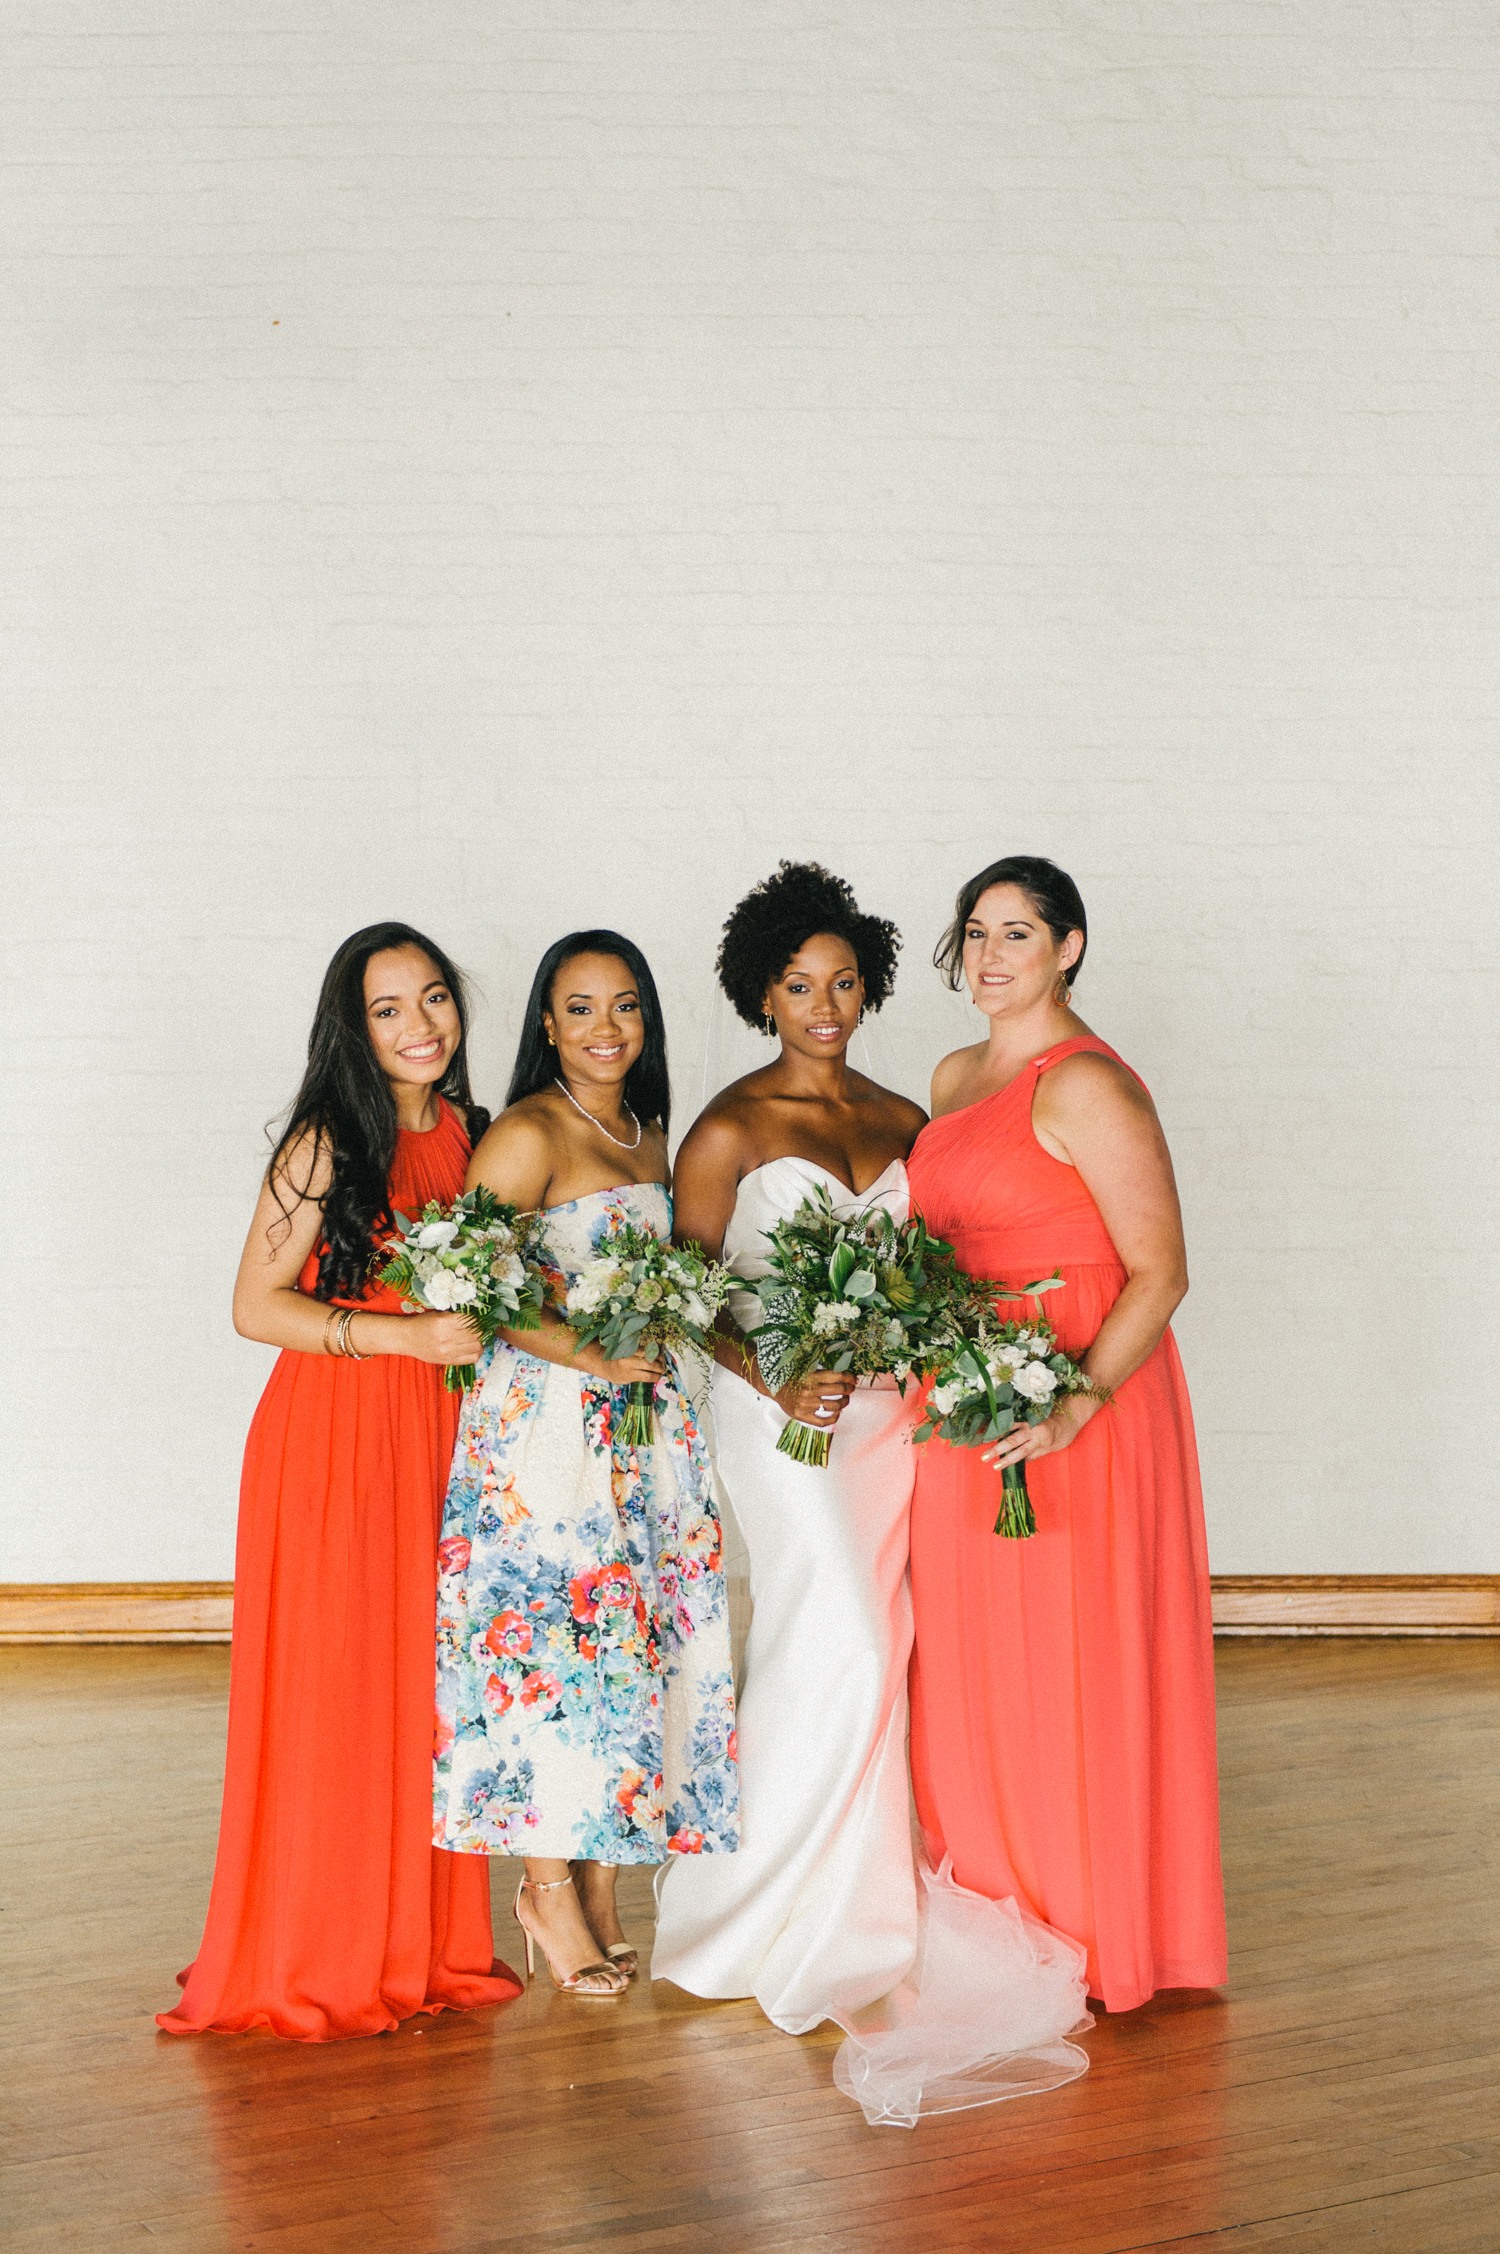 LibertyWarehouse.Brooklyn.RedHook.Wedding10.jpg